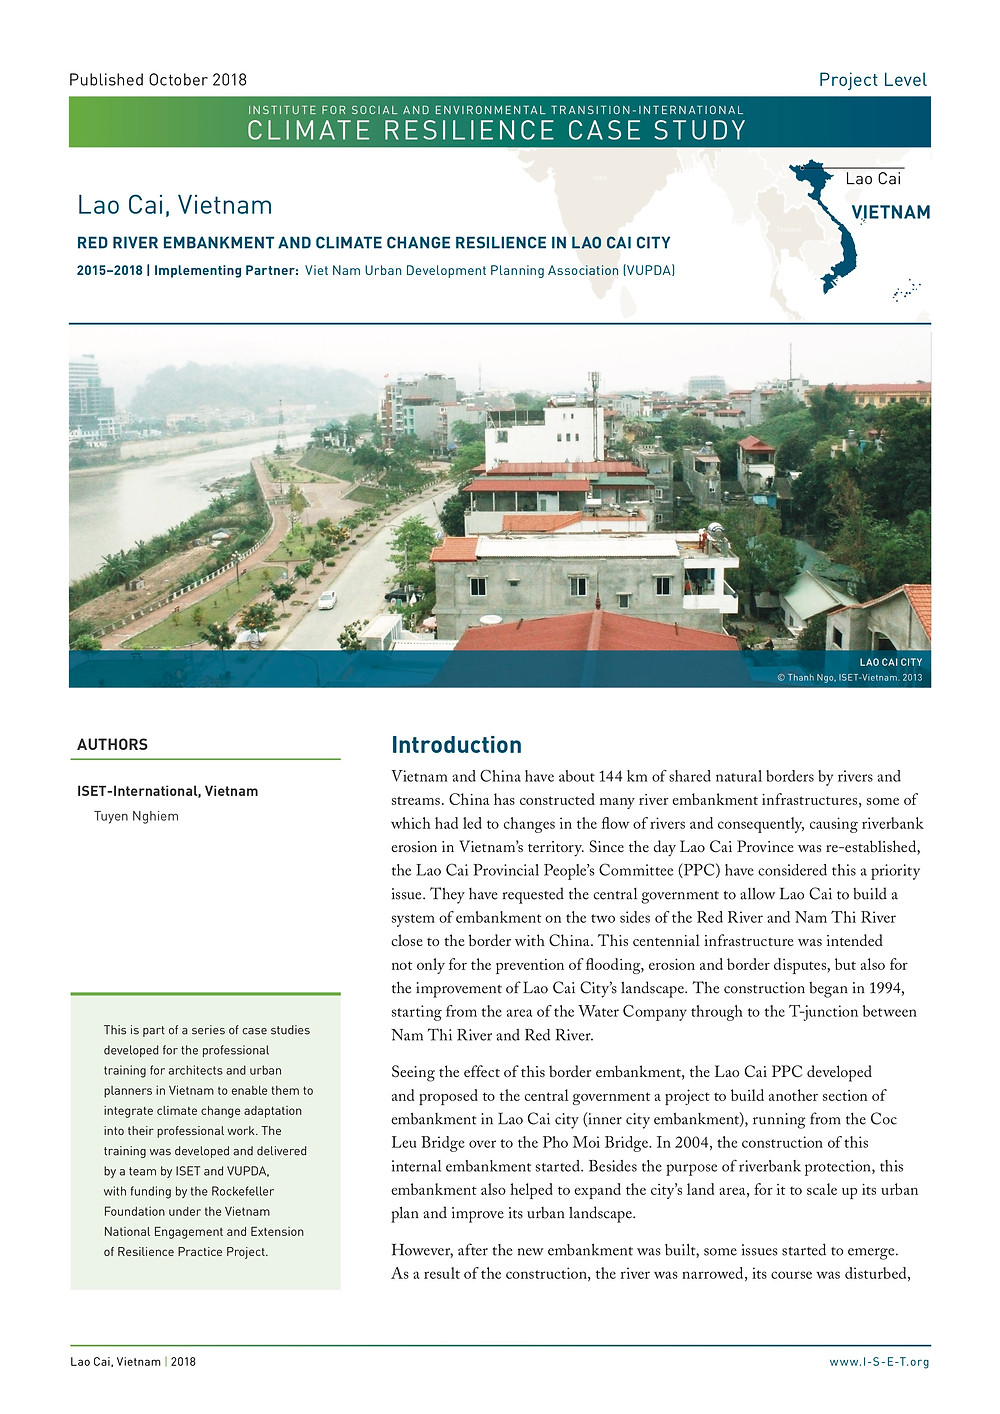 Case Study: Red River Embankment and Climate Change Resilience in Lao Cai City